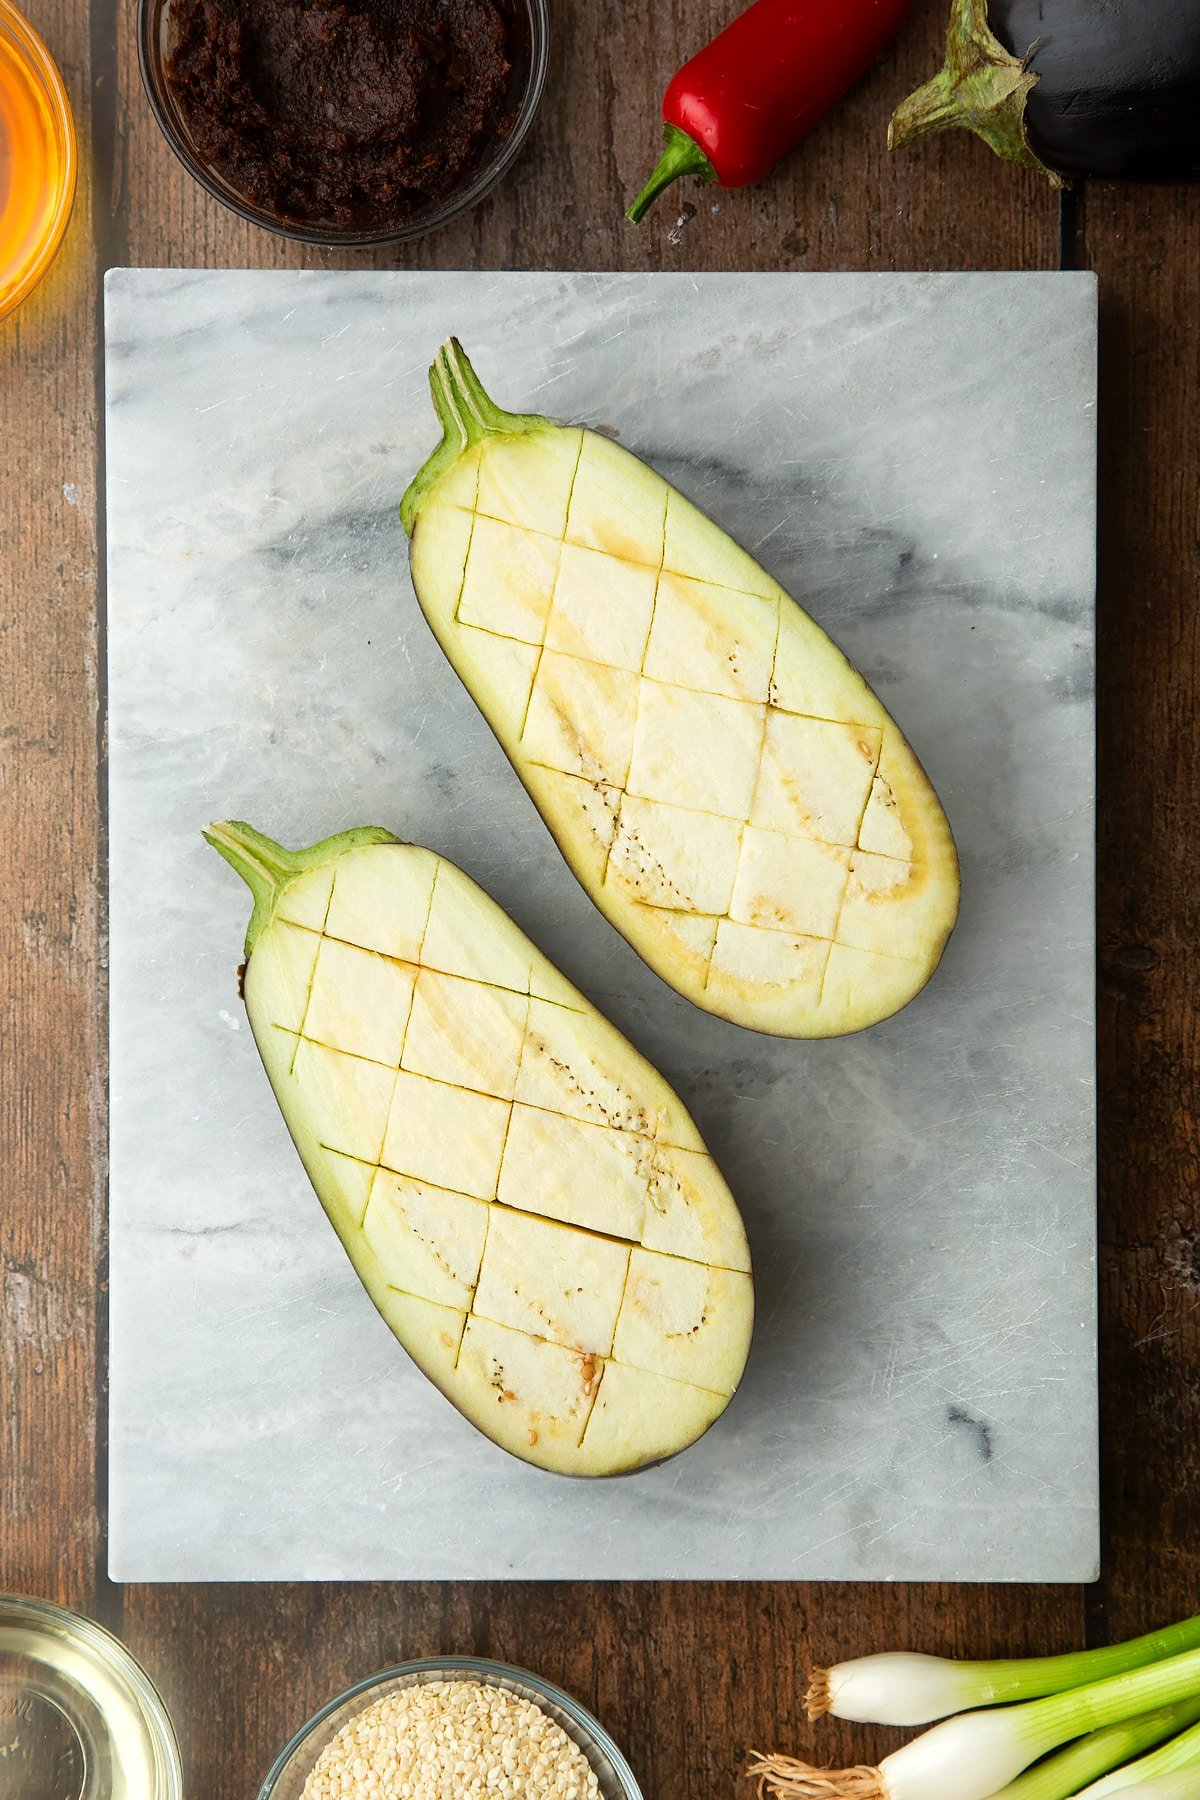 Aubergine sliced in half and scored on a board. Ingredients to make miso aubergine surround the board.